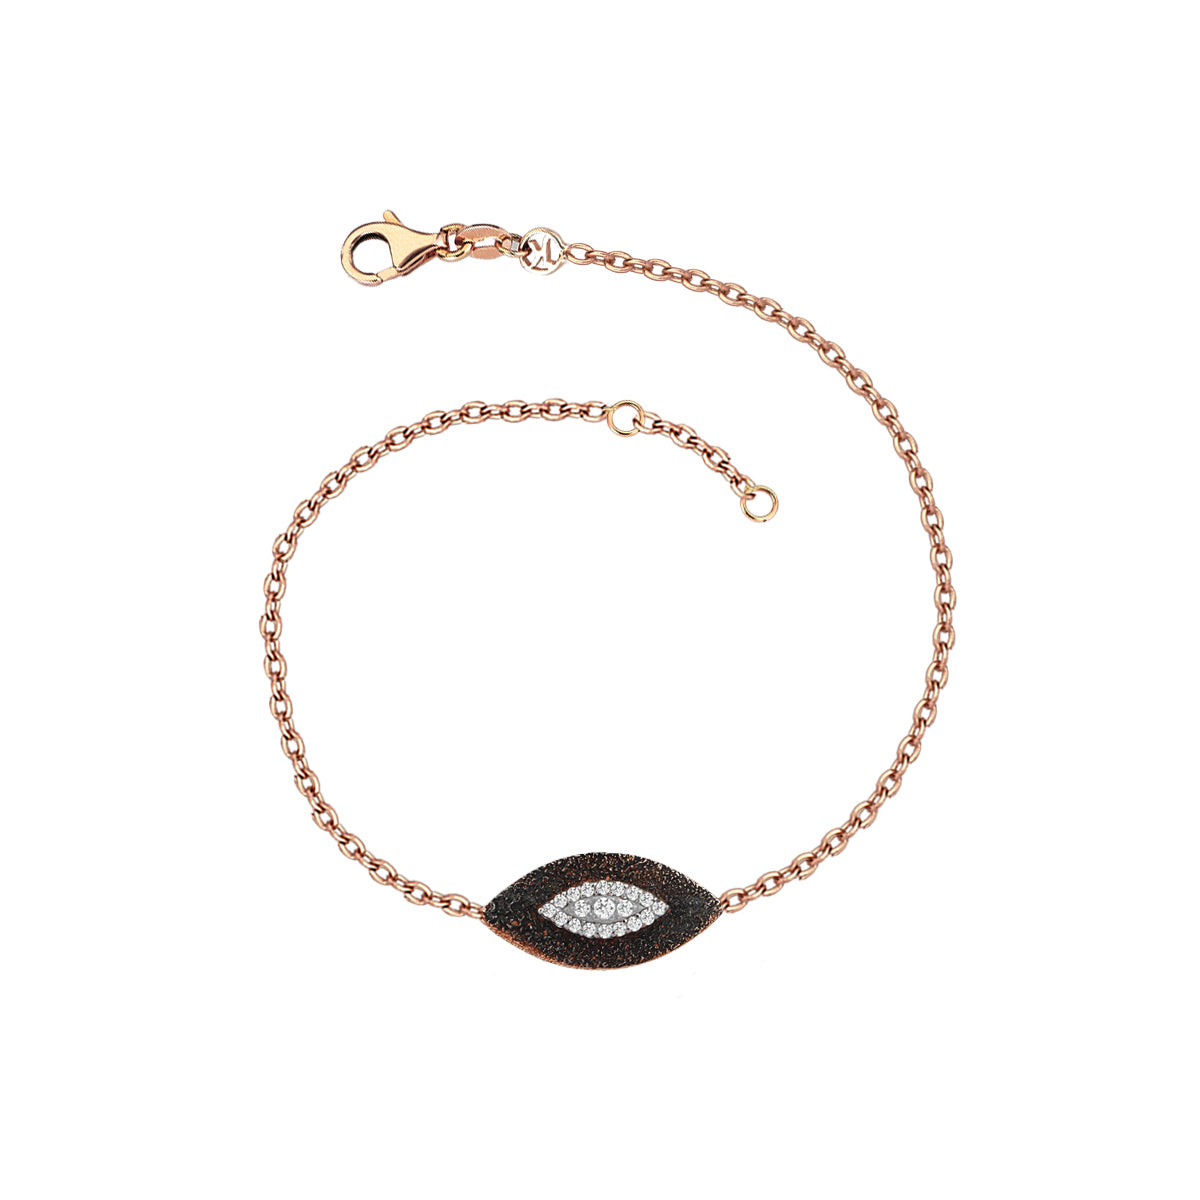 10th Big Eye Haven Bracelet by Kismet for Broken English Jewelry